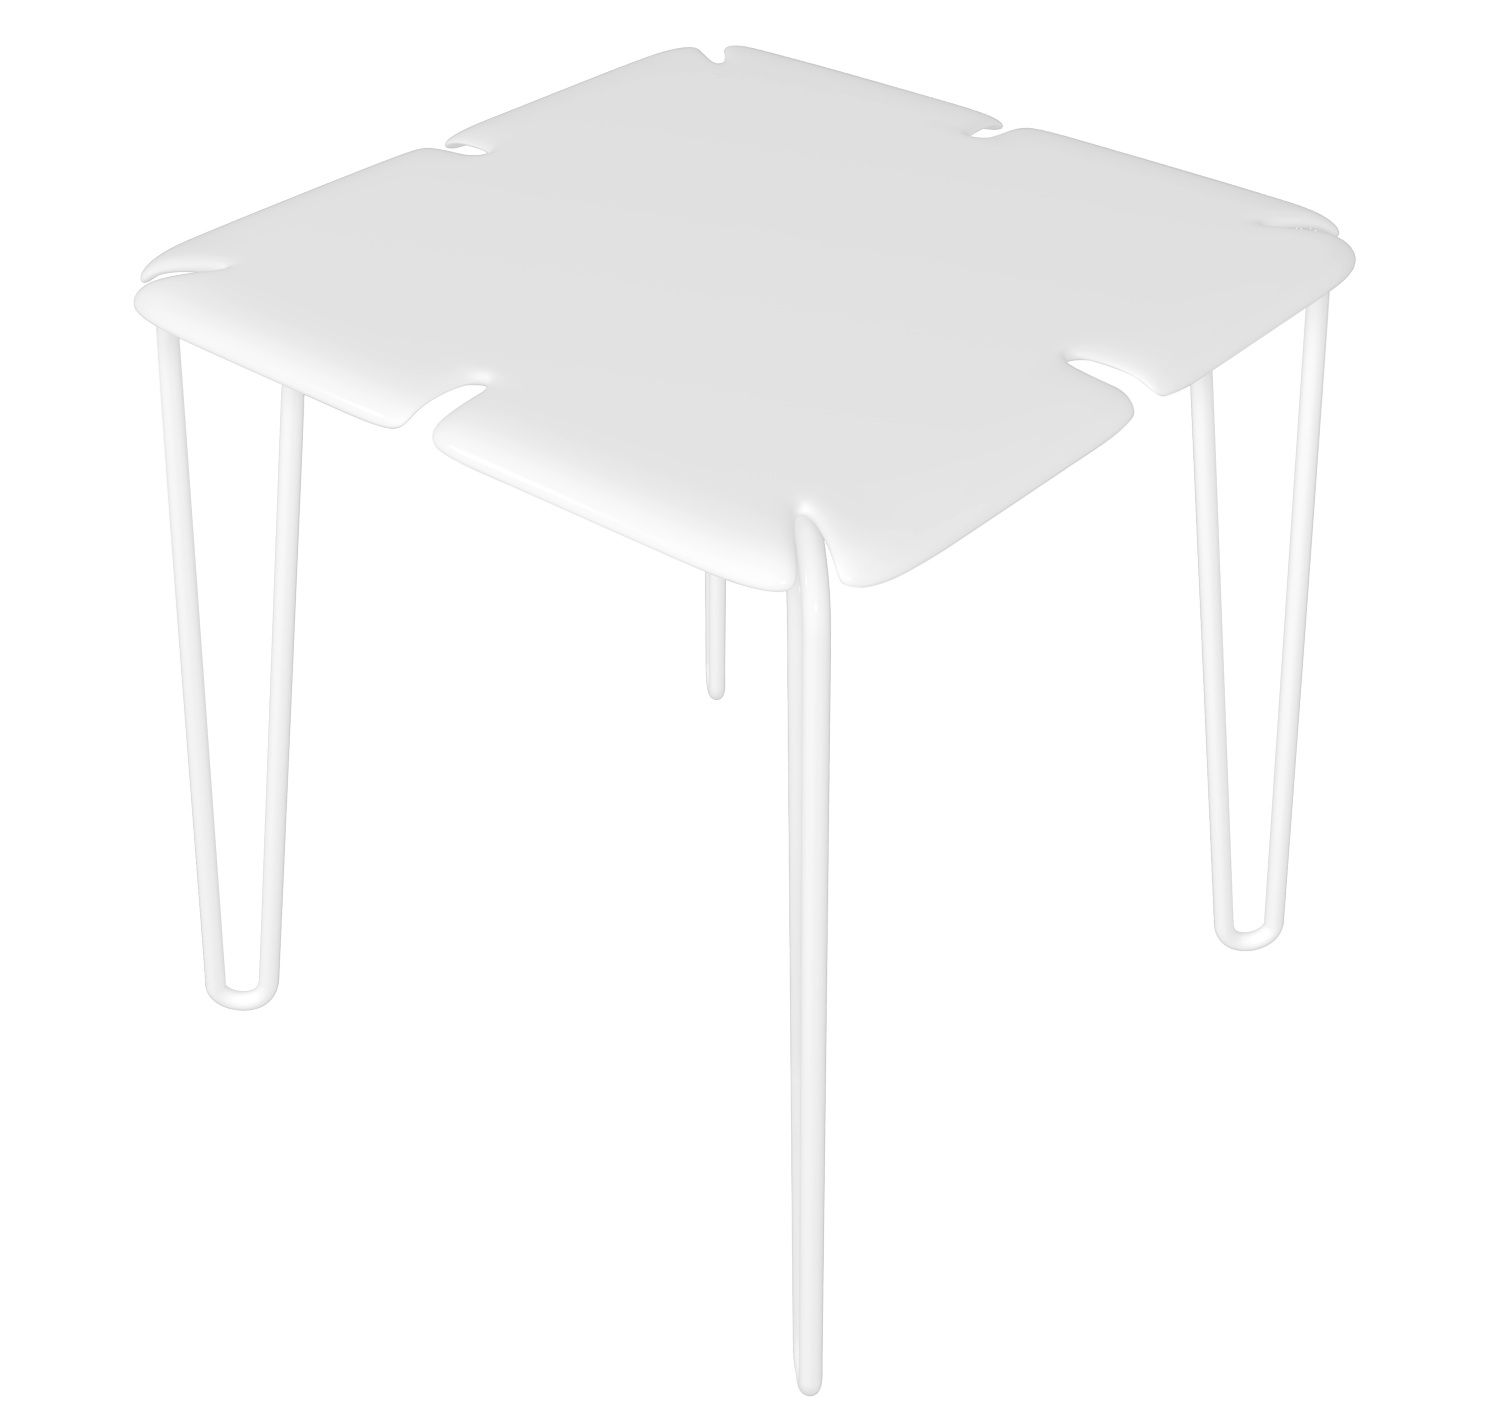 Outdoor - Garden Tables - Chips Square table - Table by MyYour - White - Corian - Corian, Painted stainless steel